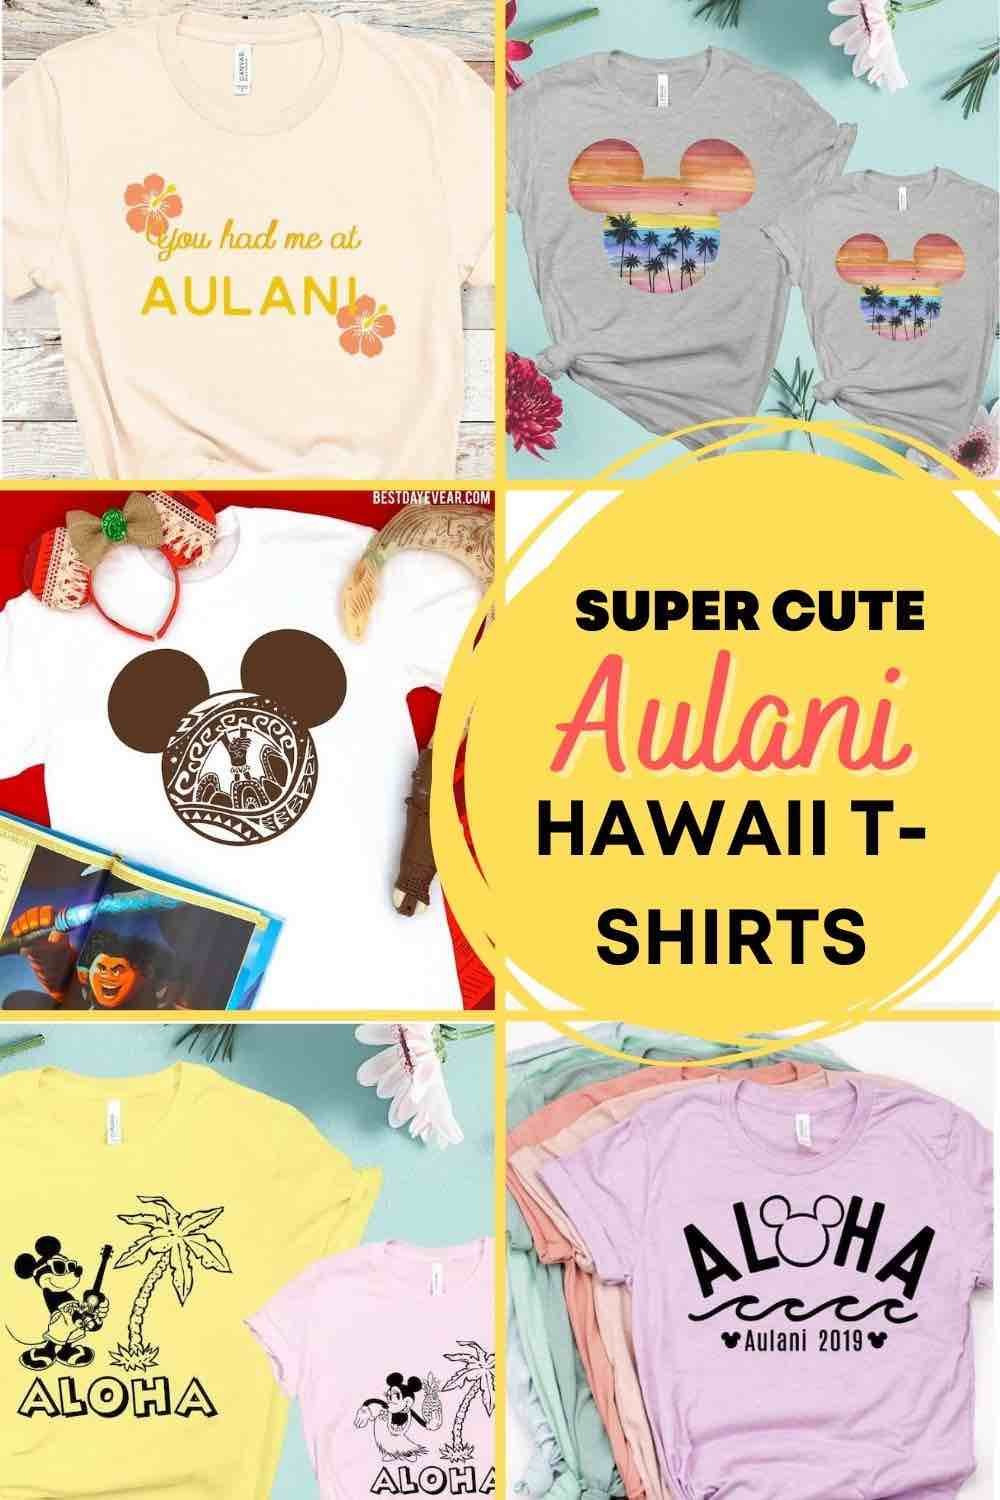 Find out the cutest Disney Aulani t-shirts to buy before your trip to Disney's Aulani Resort in Hawaii by top Hawaii blog Hawaii Travel with Kids